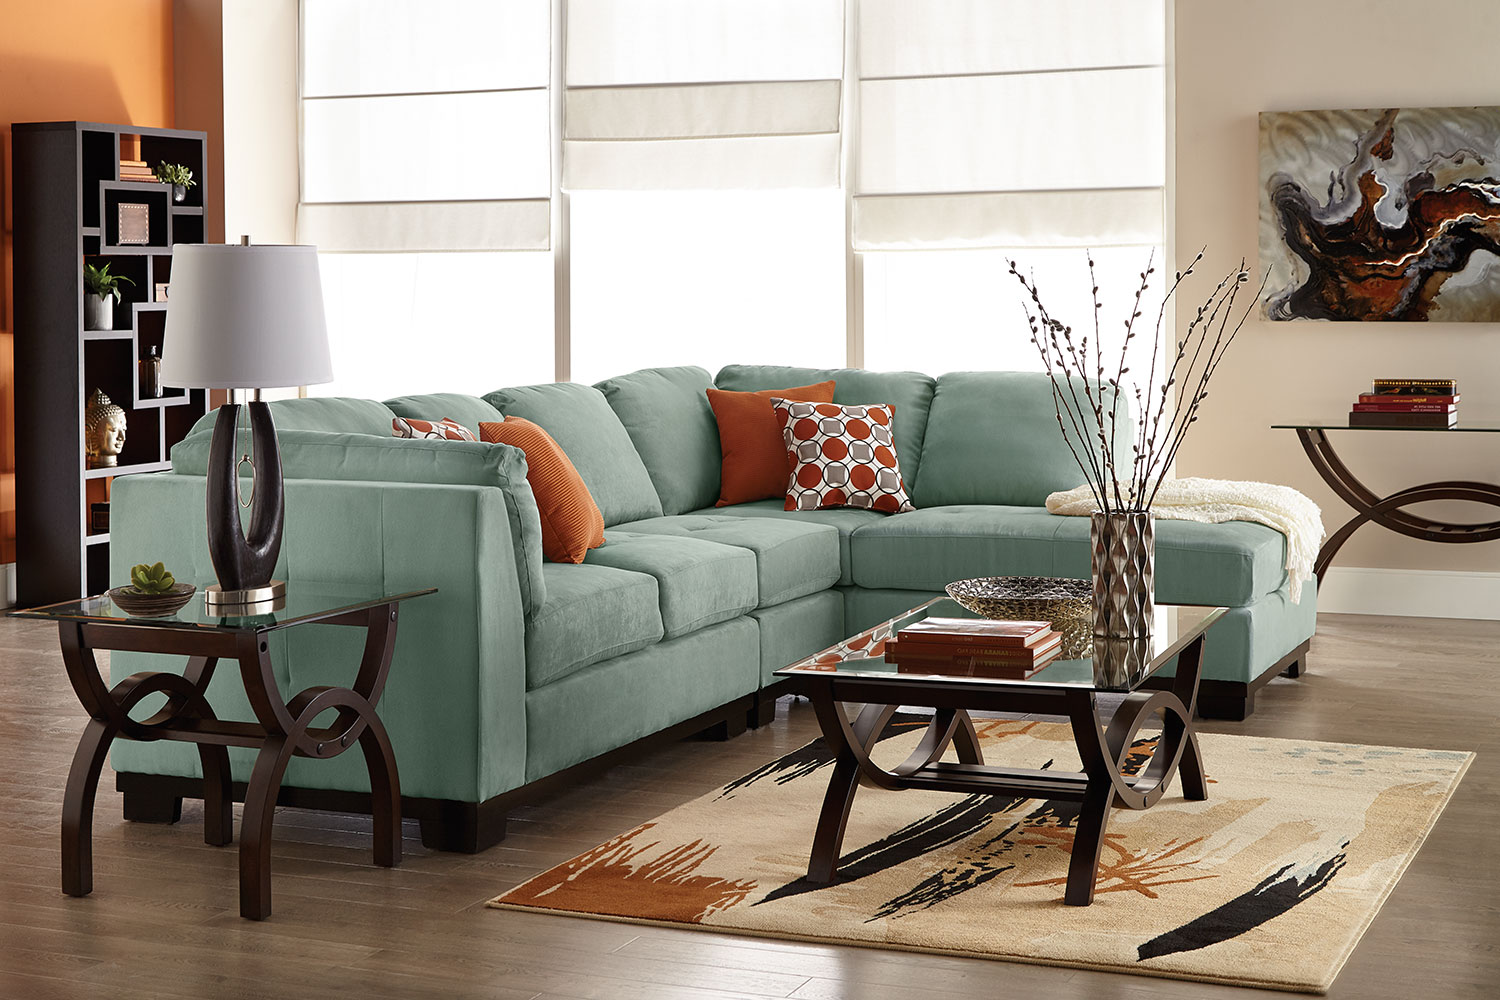 Oakdale 3 Piece Microsuede Right Facing Sectional Aqua The Brick